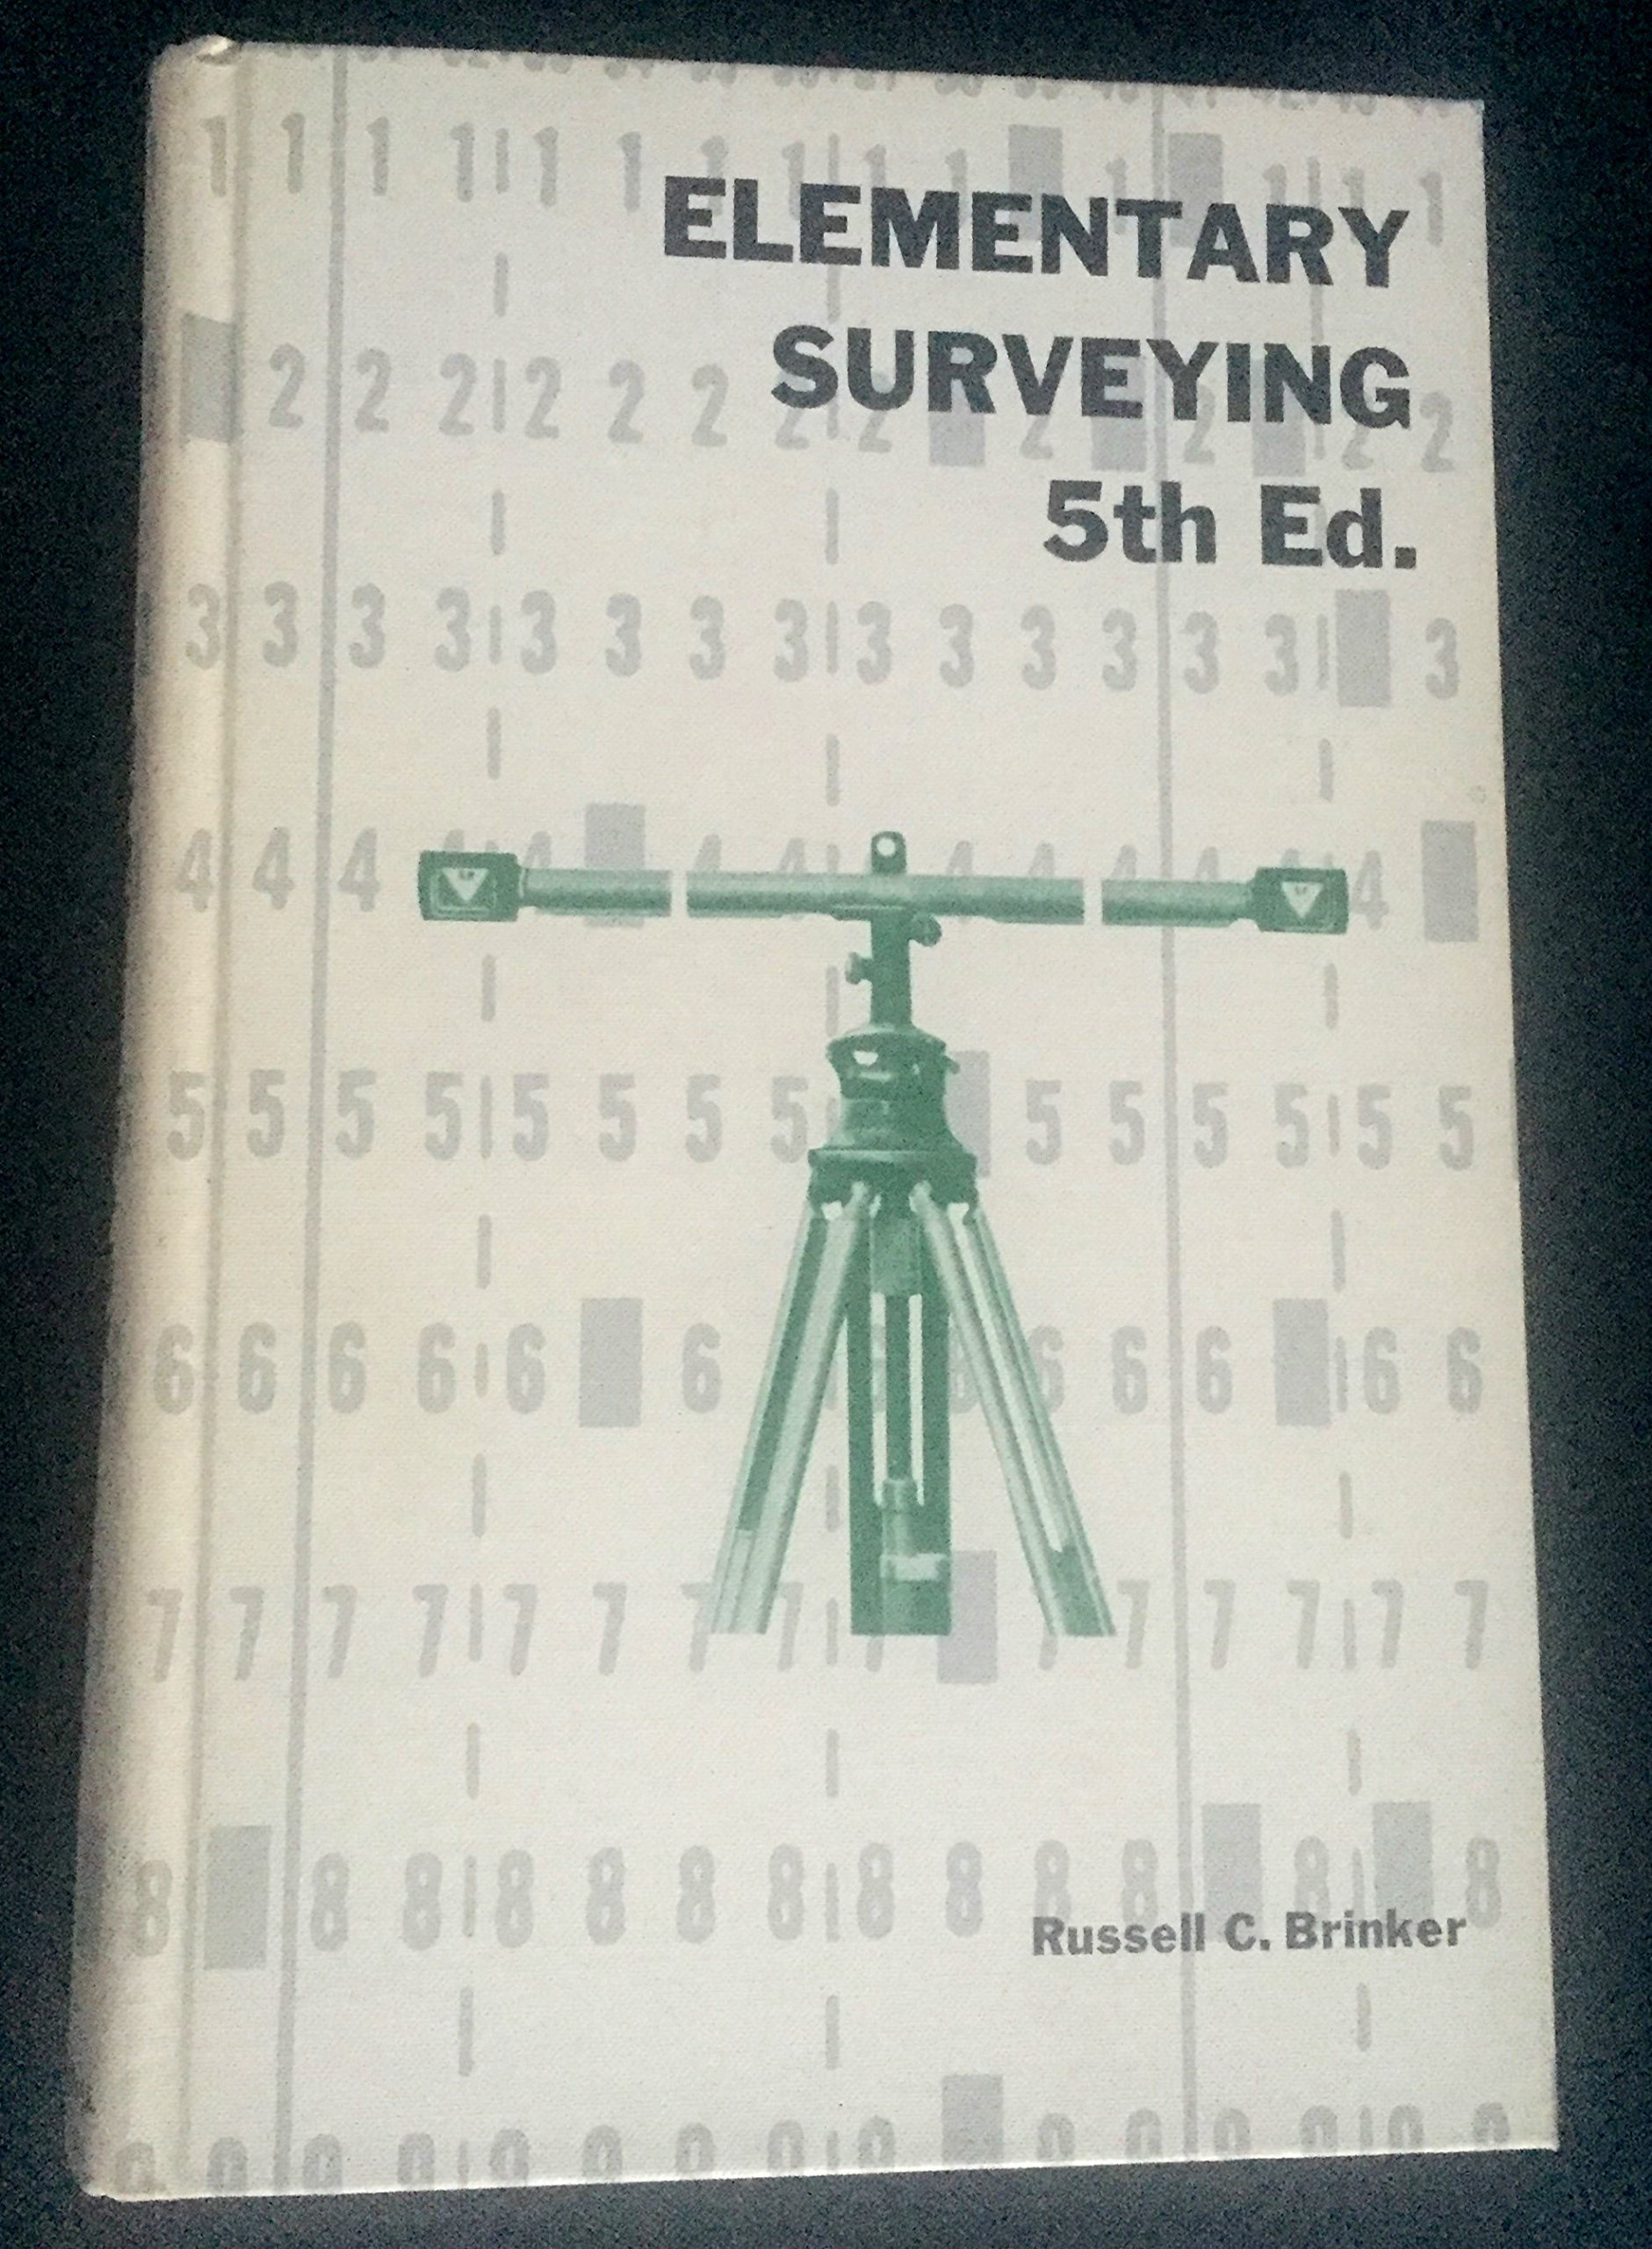 Elementary Surveying: Russell C. Brinker, Paul R. Wolf: 9780700201150:  Amazon.com: Books